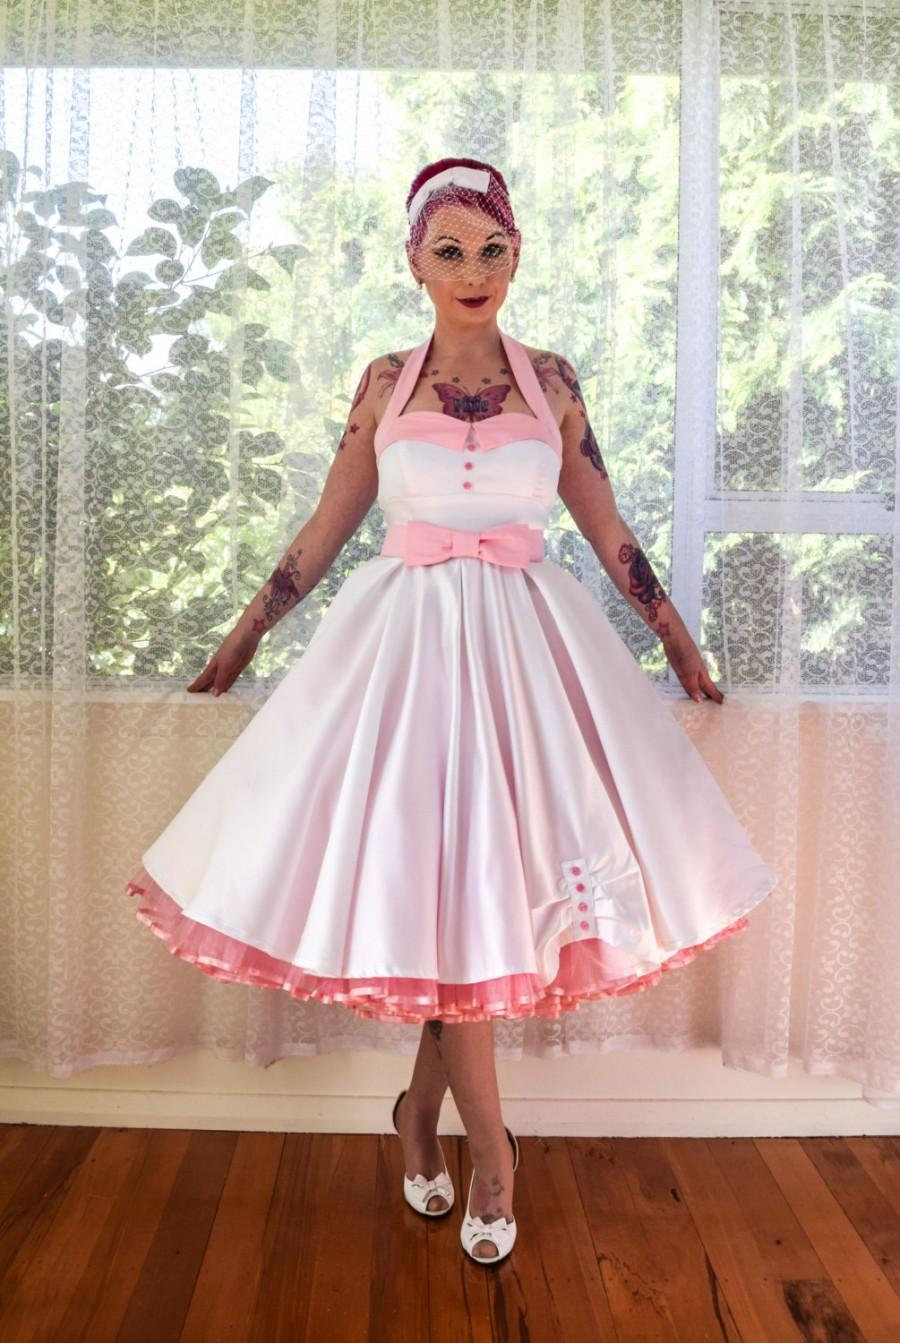 Mariage - 1950's Rockabilly 'Ruby' Wedding Dress with Lapels, Sash, Full Circle Tea Length Skirt and Petticoat - Custom Made to Fit